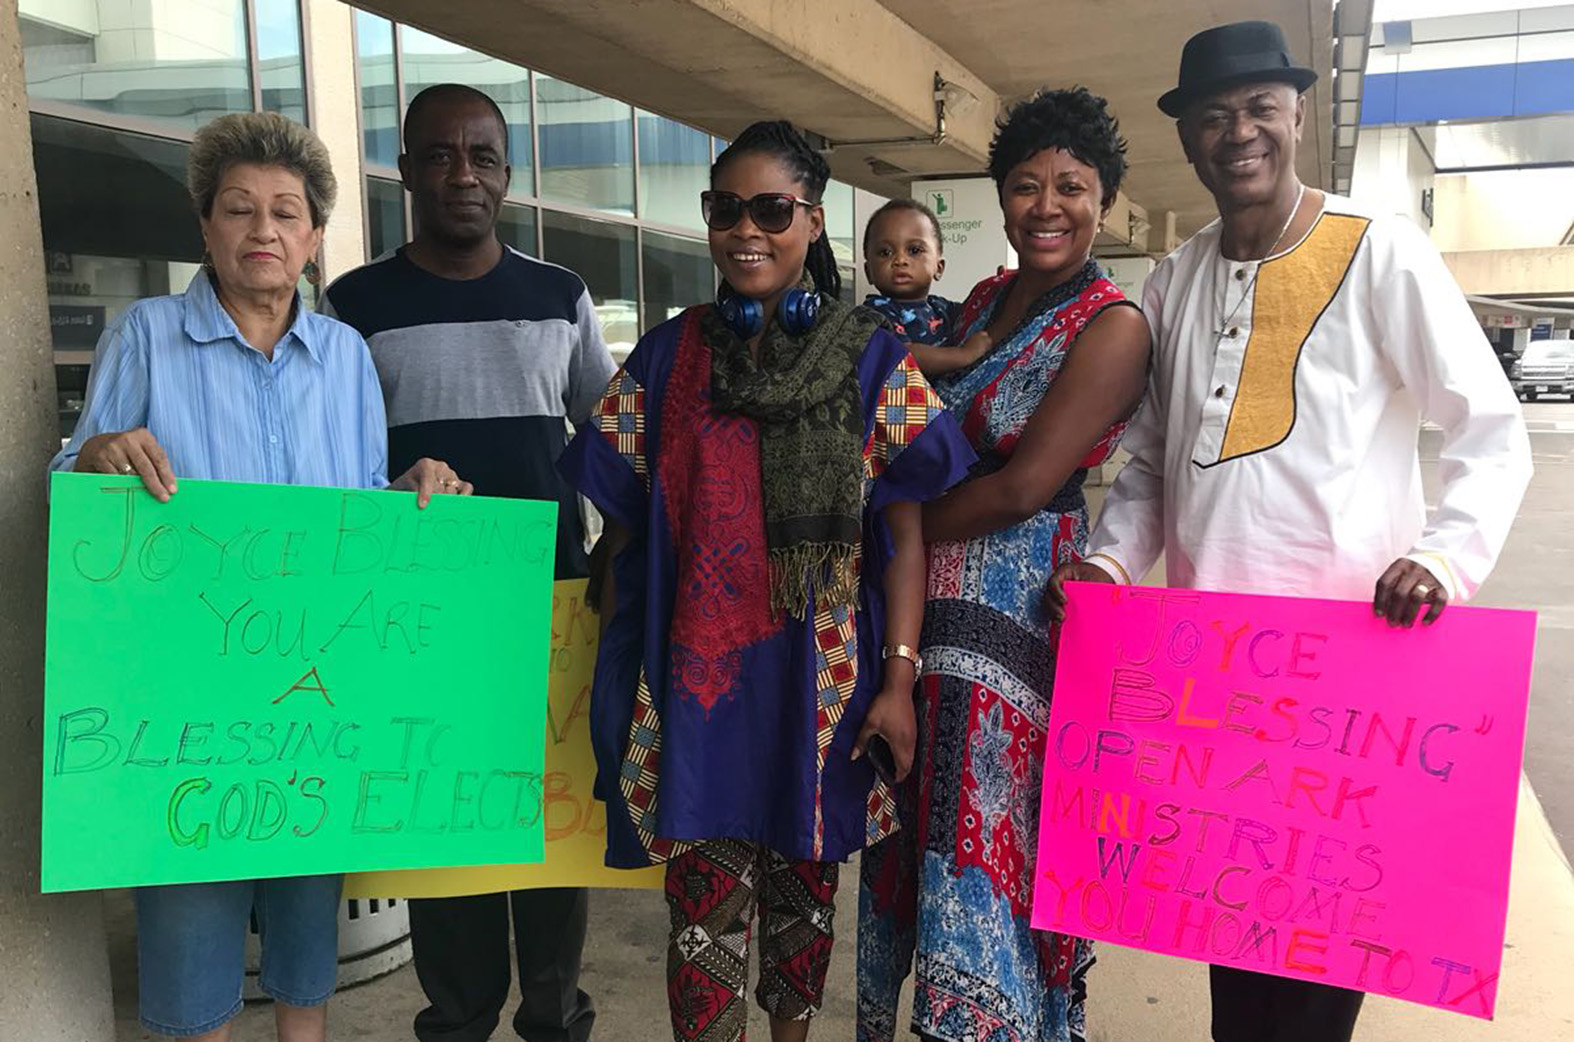 Joyce Blessing arrives in USA ahead of 'I Swerve You' tour